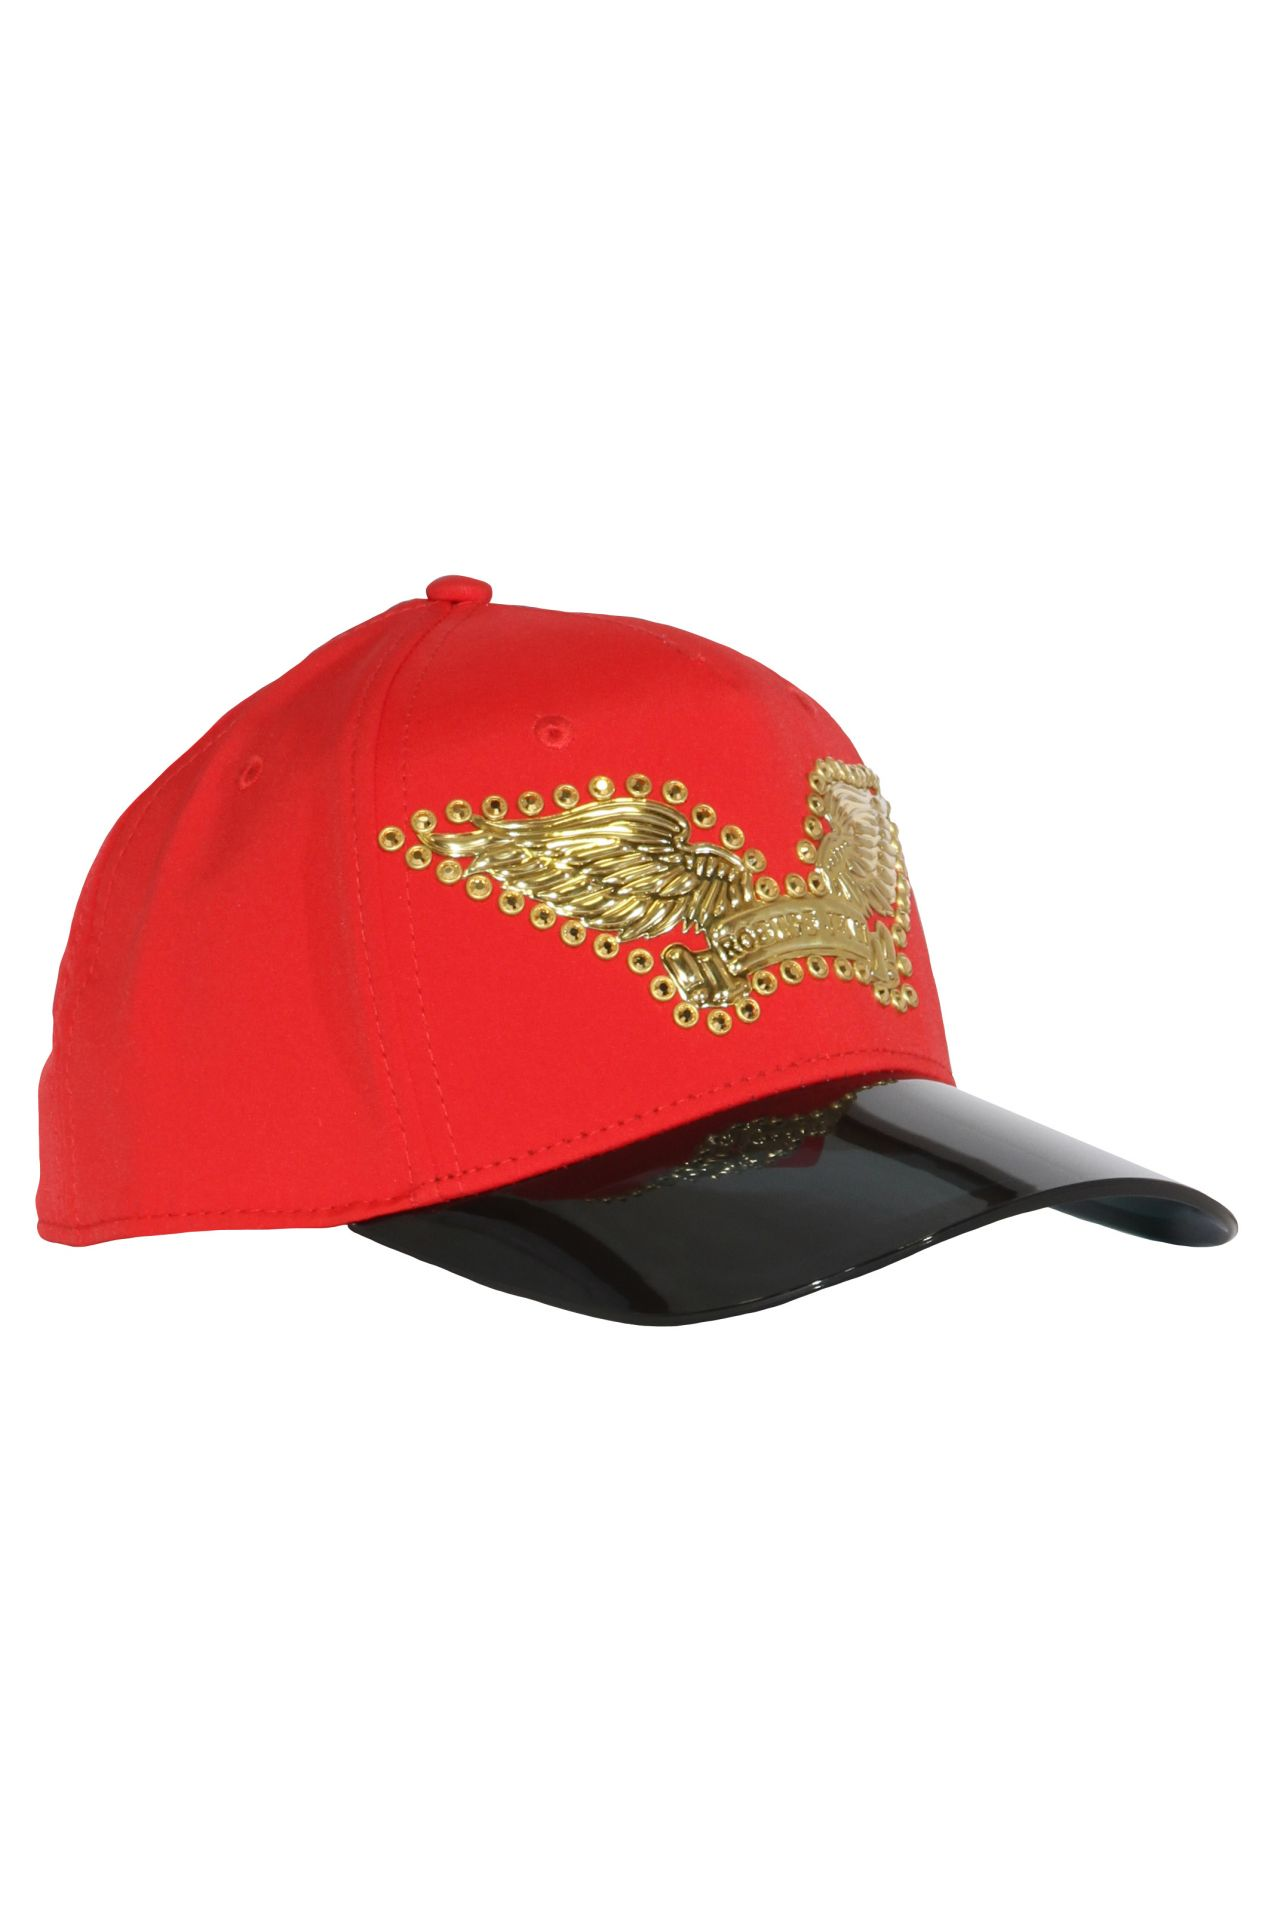 VISOR CAP IN RED WITH GOLD SW